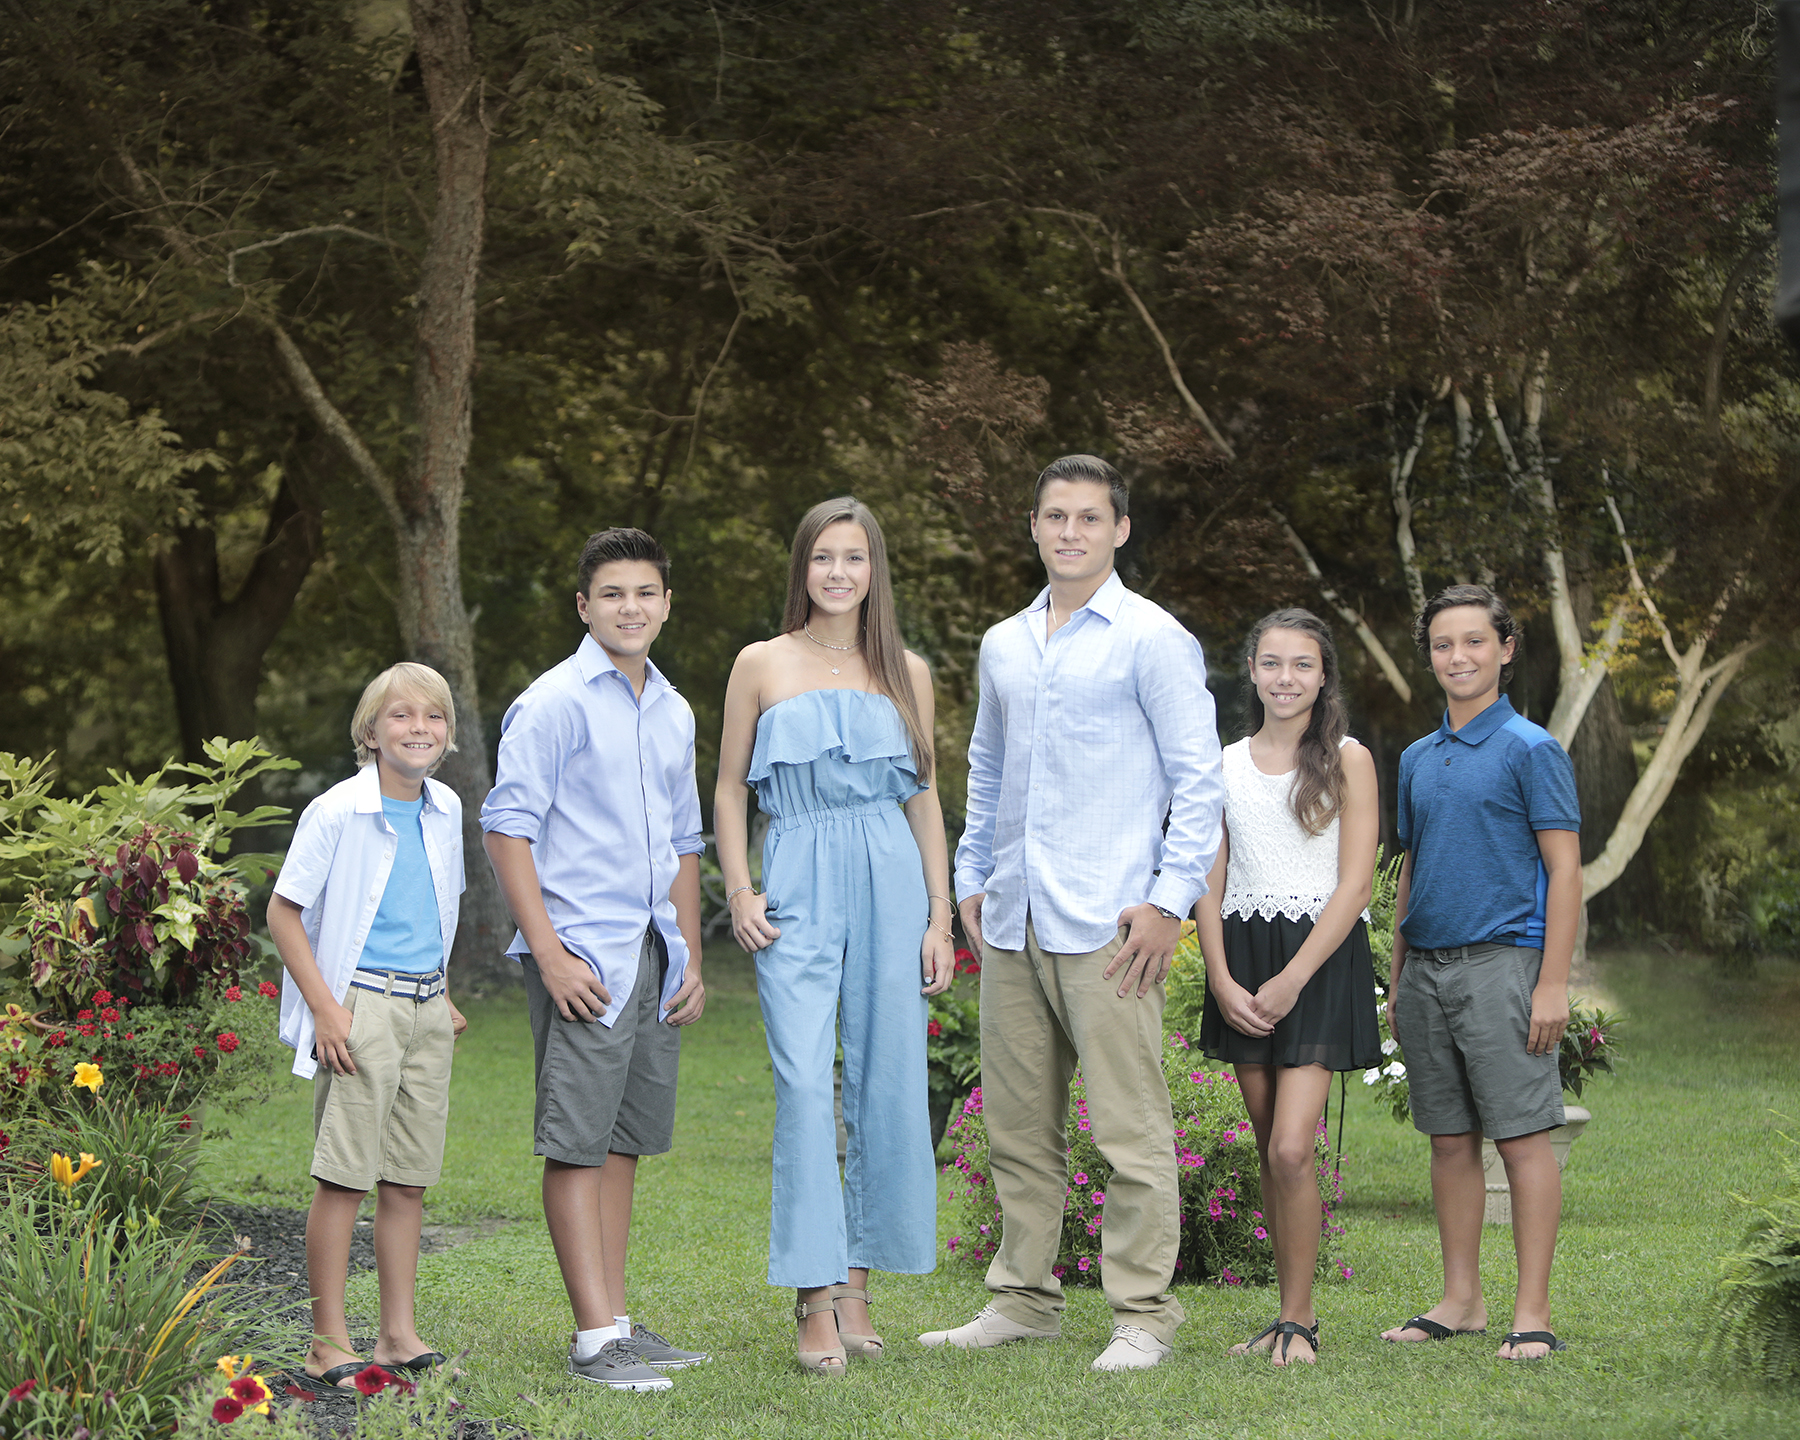 Family-photographer-in South-Jersey-Jules.jpg